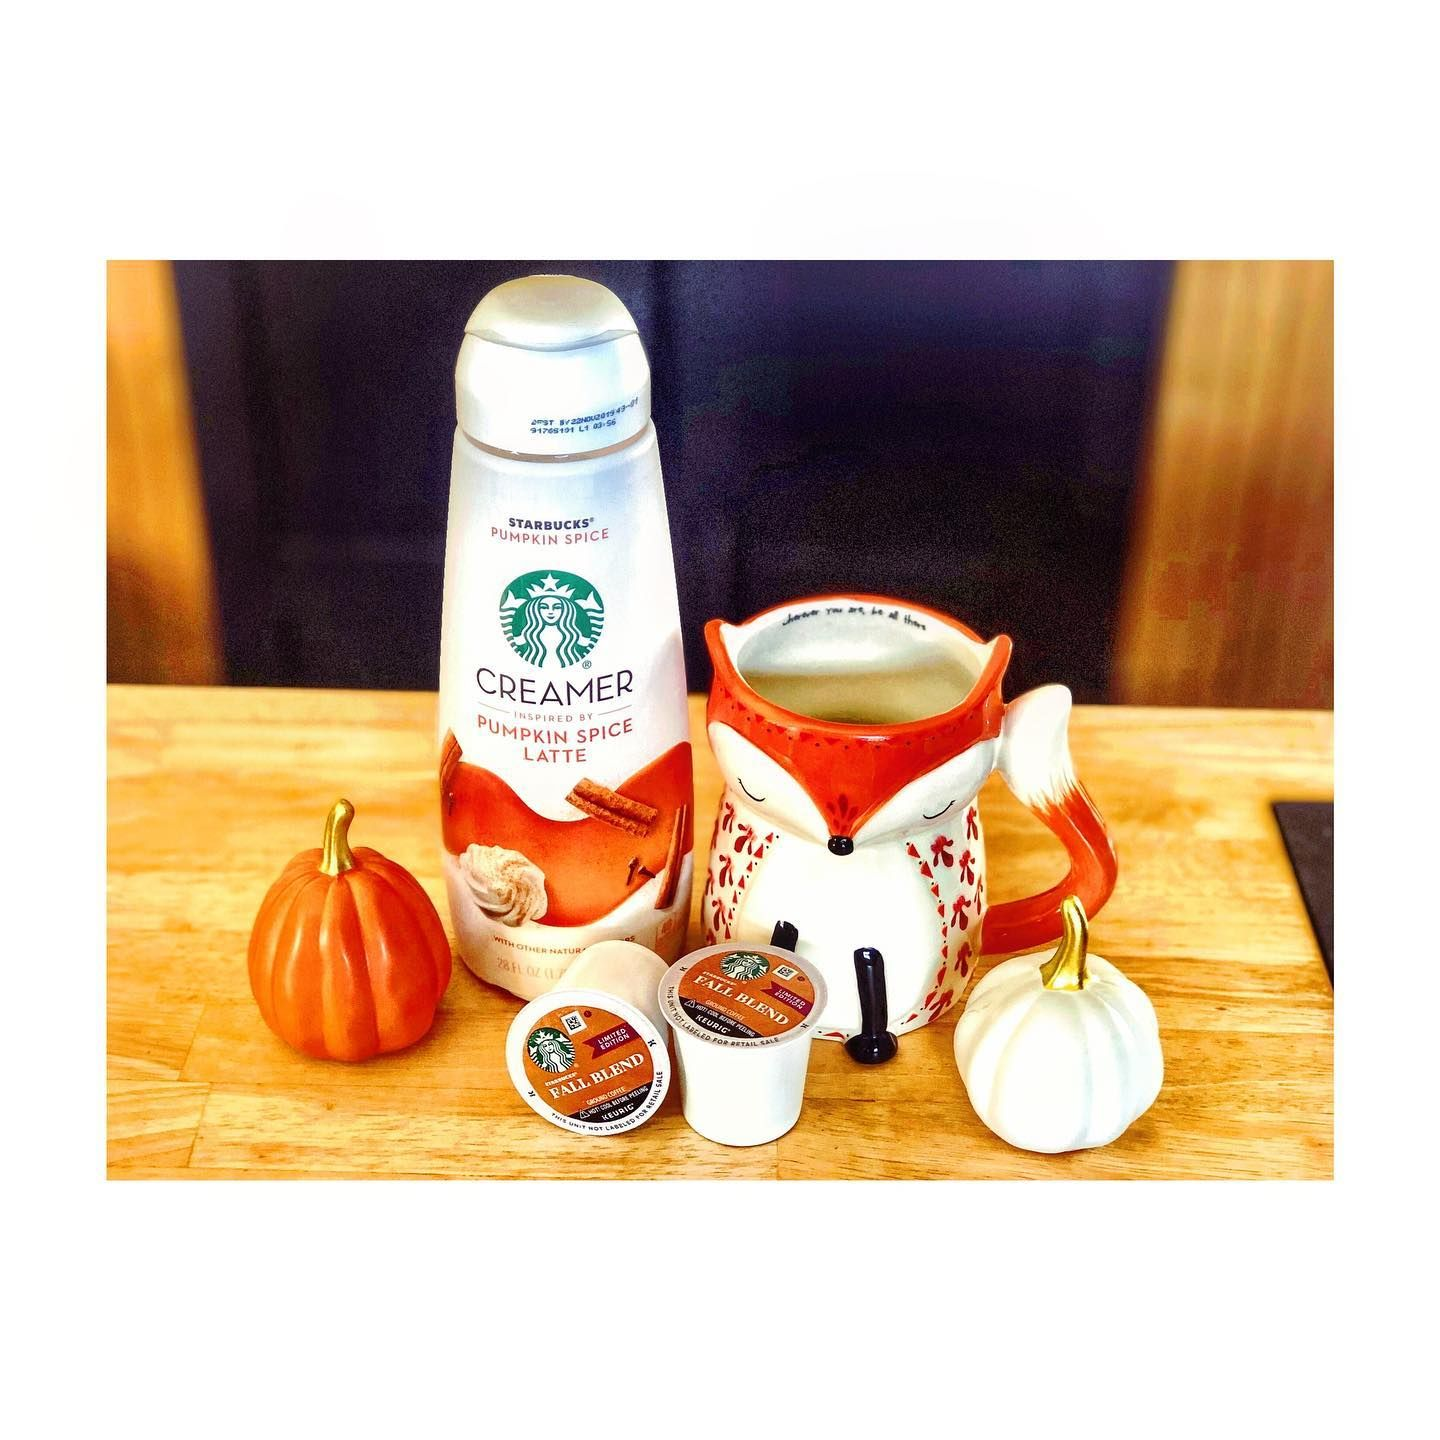 S U N D A Y Happy National Coffee Day Ad I M Enjoying My Starbucks Fall Blend This Morning With Th In 2020 Pumpkin Spice Creamer Creamer Flavors Starbucks Fall